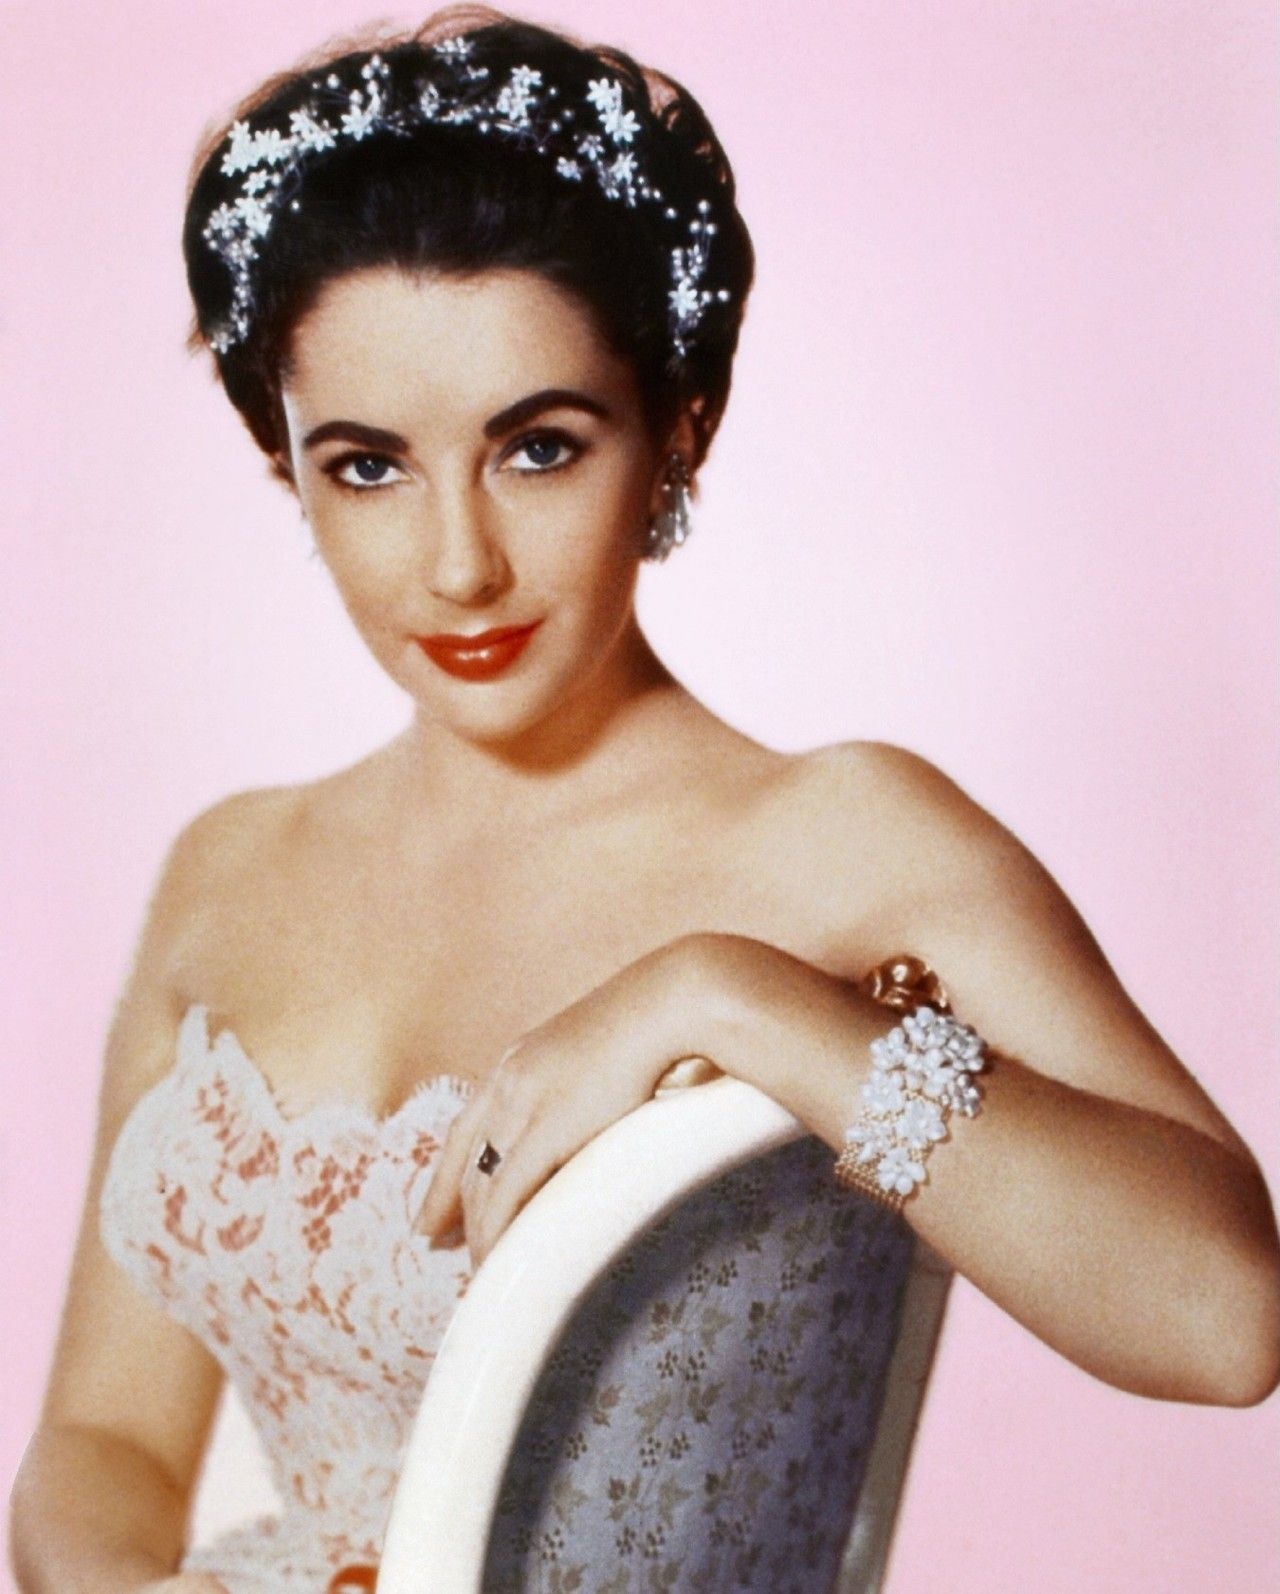 Dame Elizabeth Taylor With A True Pixie Cut And This Was Before